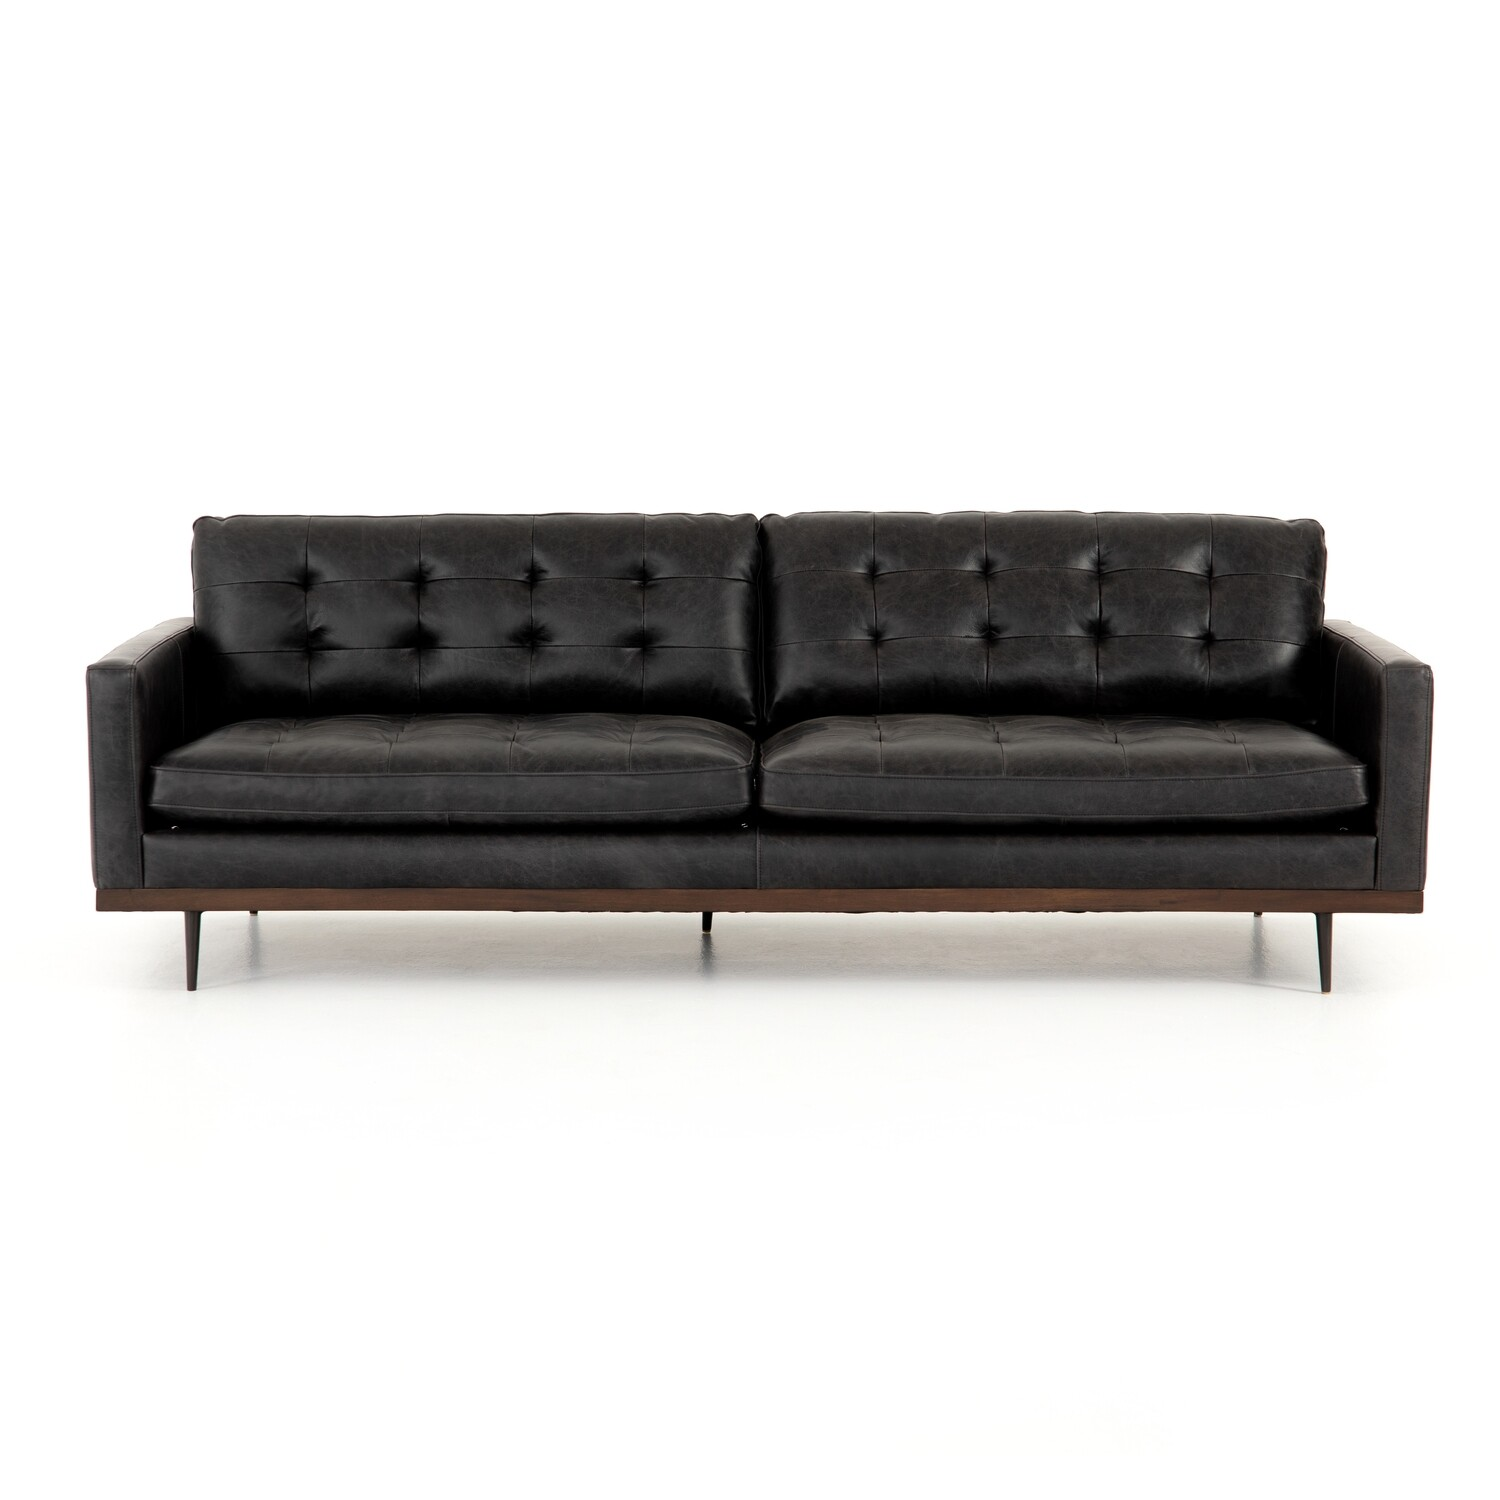 Lexi Leather Sofa